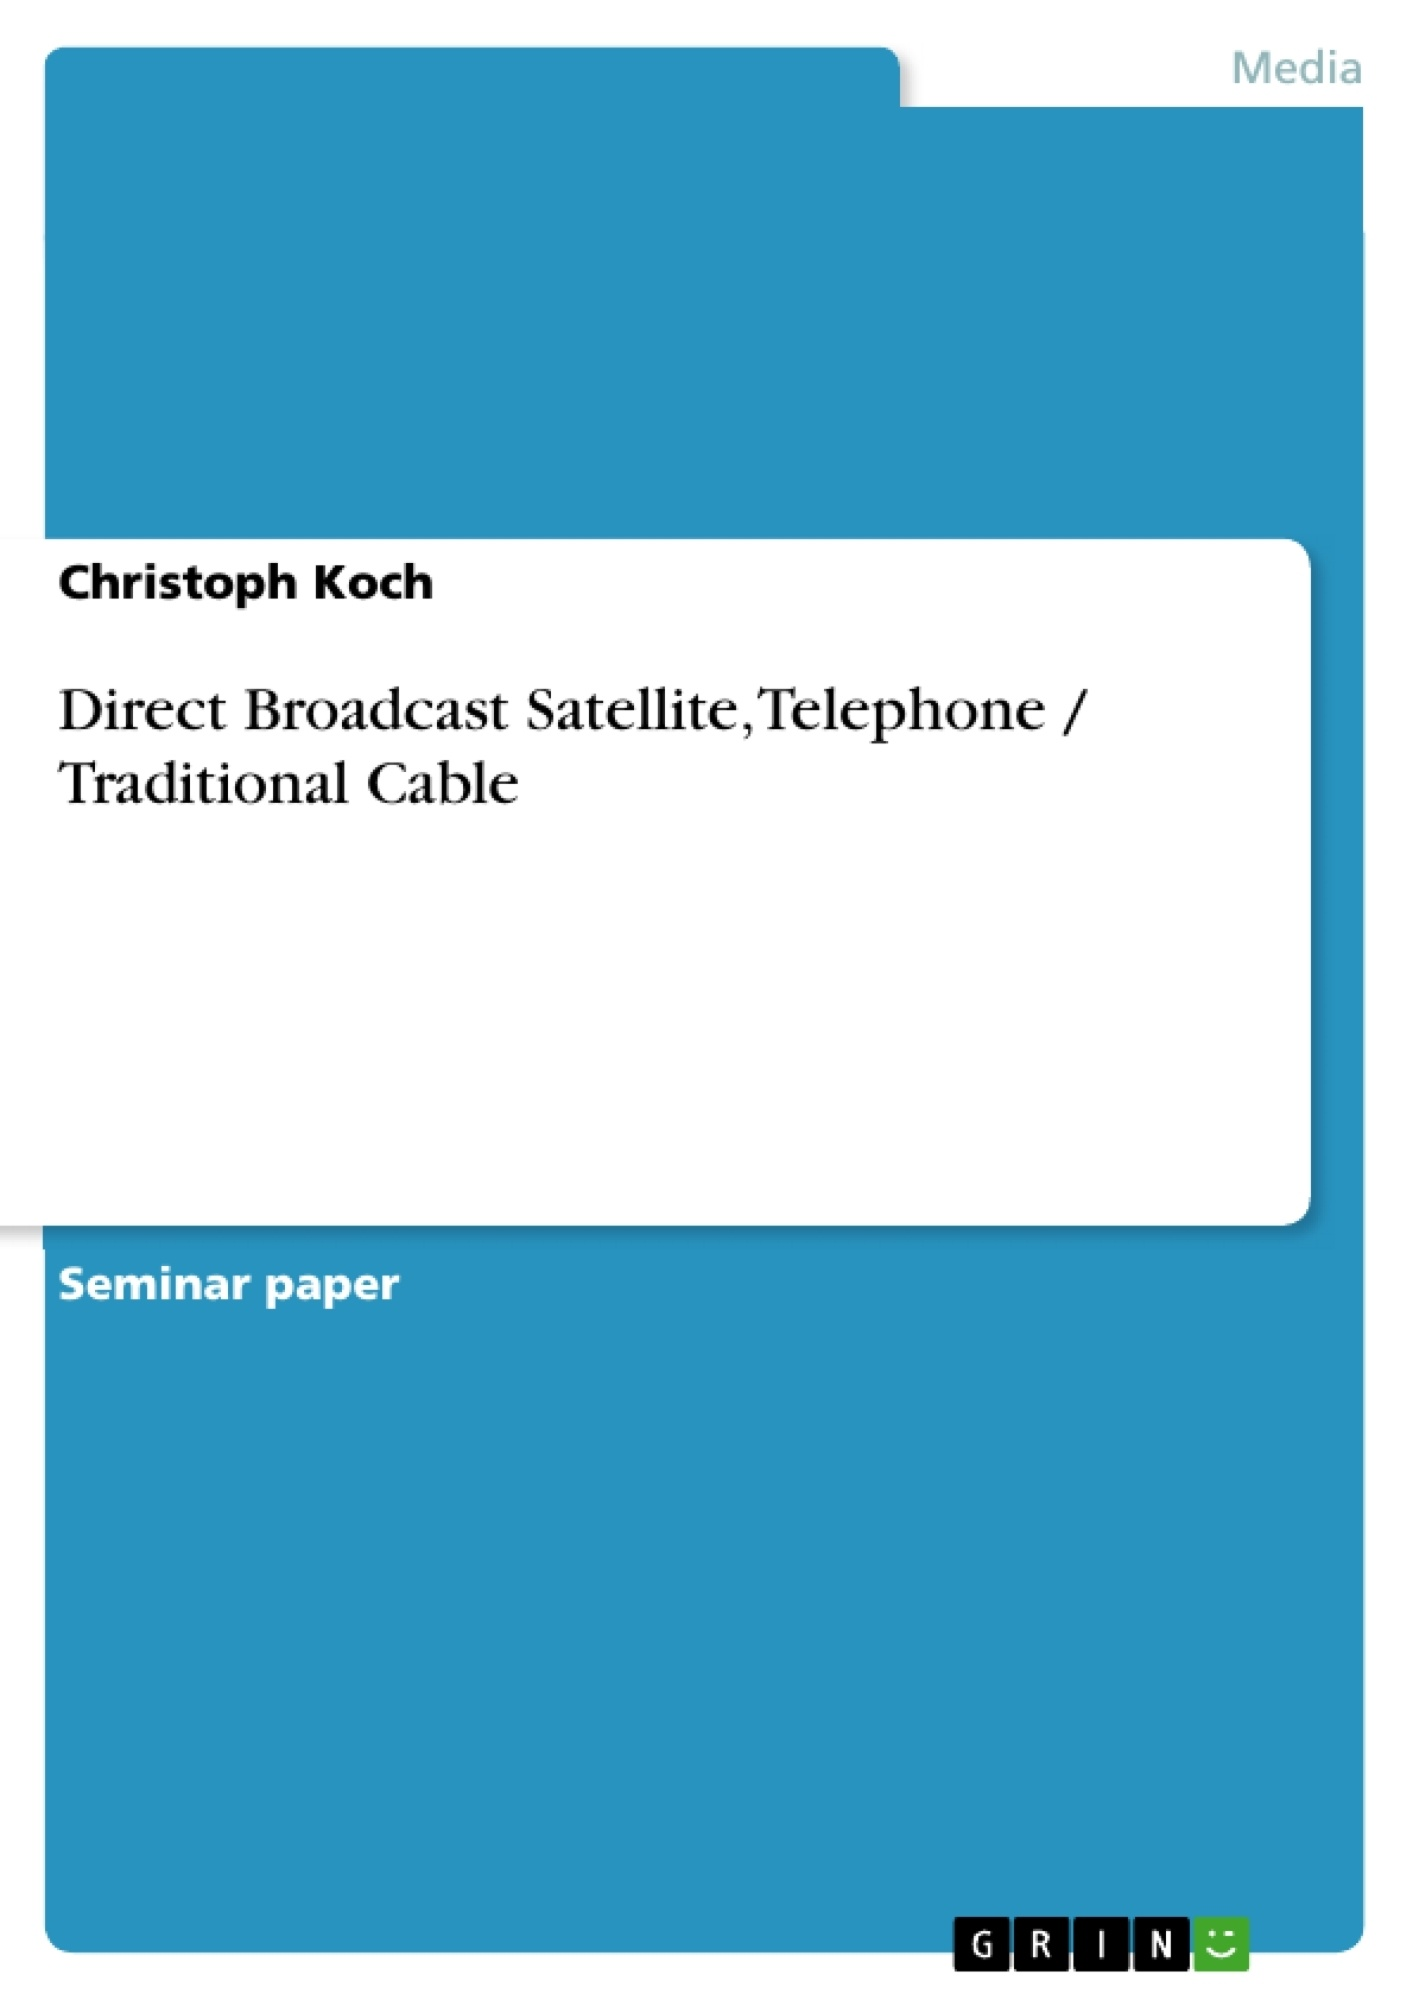 Title: Direct Broadcast Satellite, Telephone / Traditional Cable